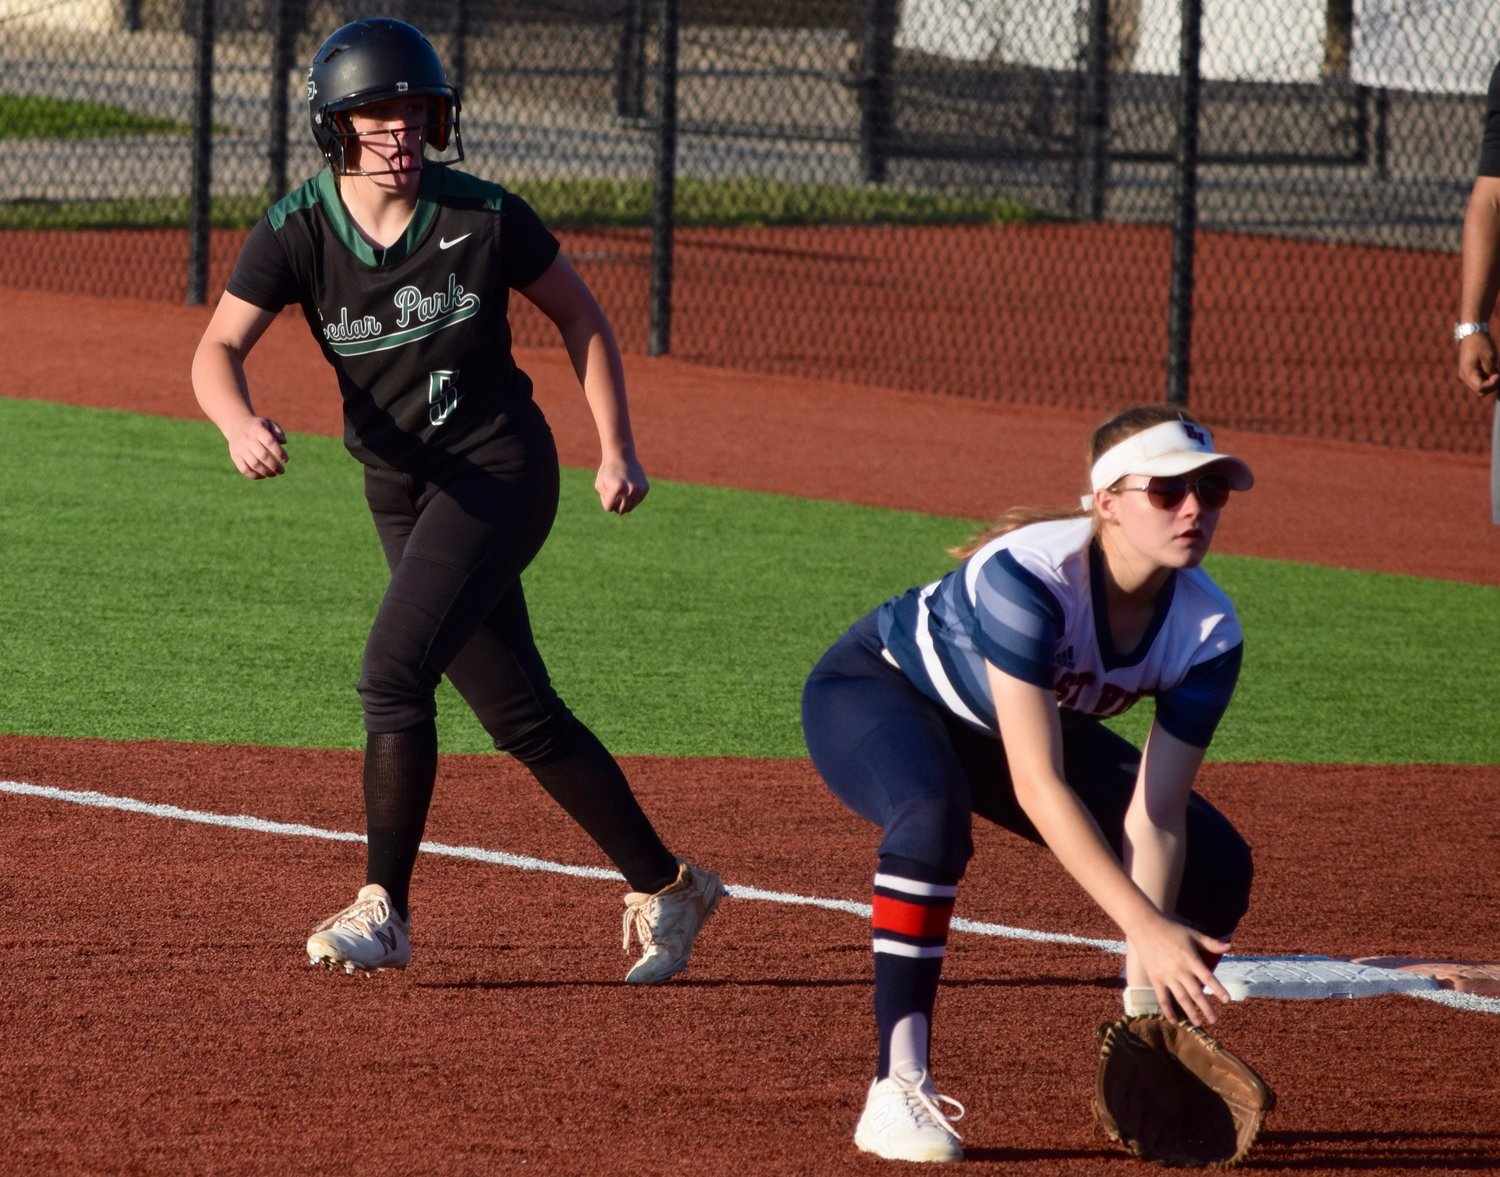 Mackenna Raby and Cedar Park lost to East View 4-3 in extra innings on Friday to bring the Lady Timberwolves' season to an end.